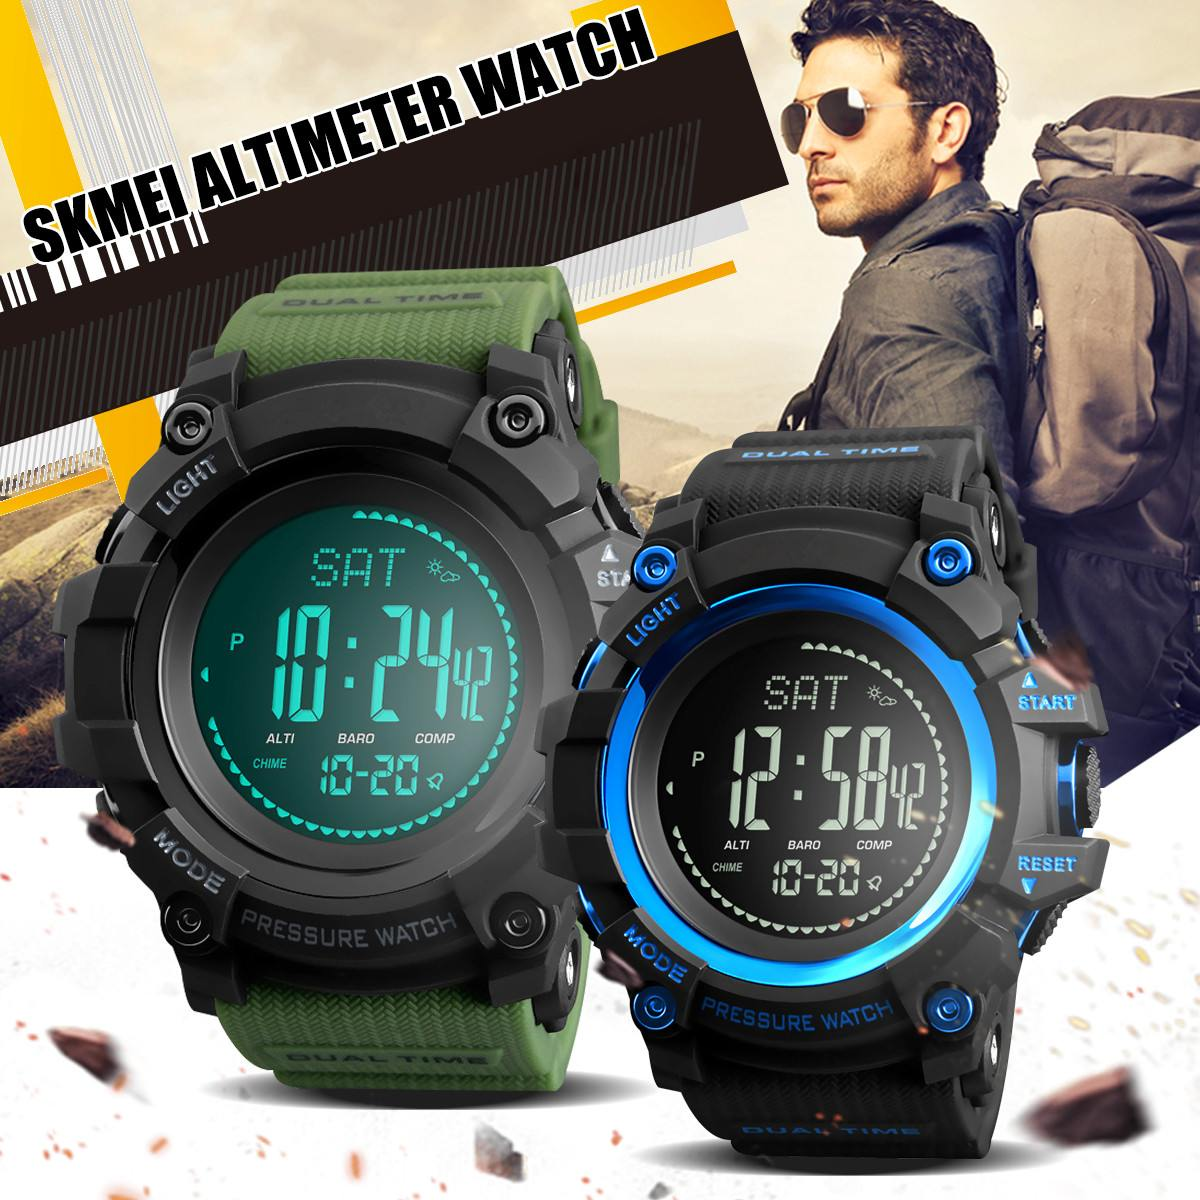 Waterproof Sports Mens Watch Altimeter Pressure Weather for Compass Military 1358Waterproof Sports Mens Watch Altimeter Pressure Weather for Compass Military 1358